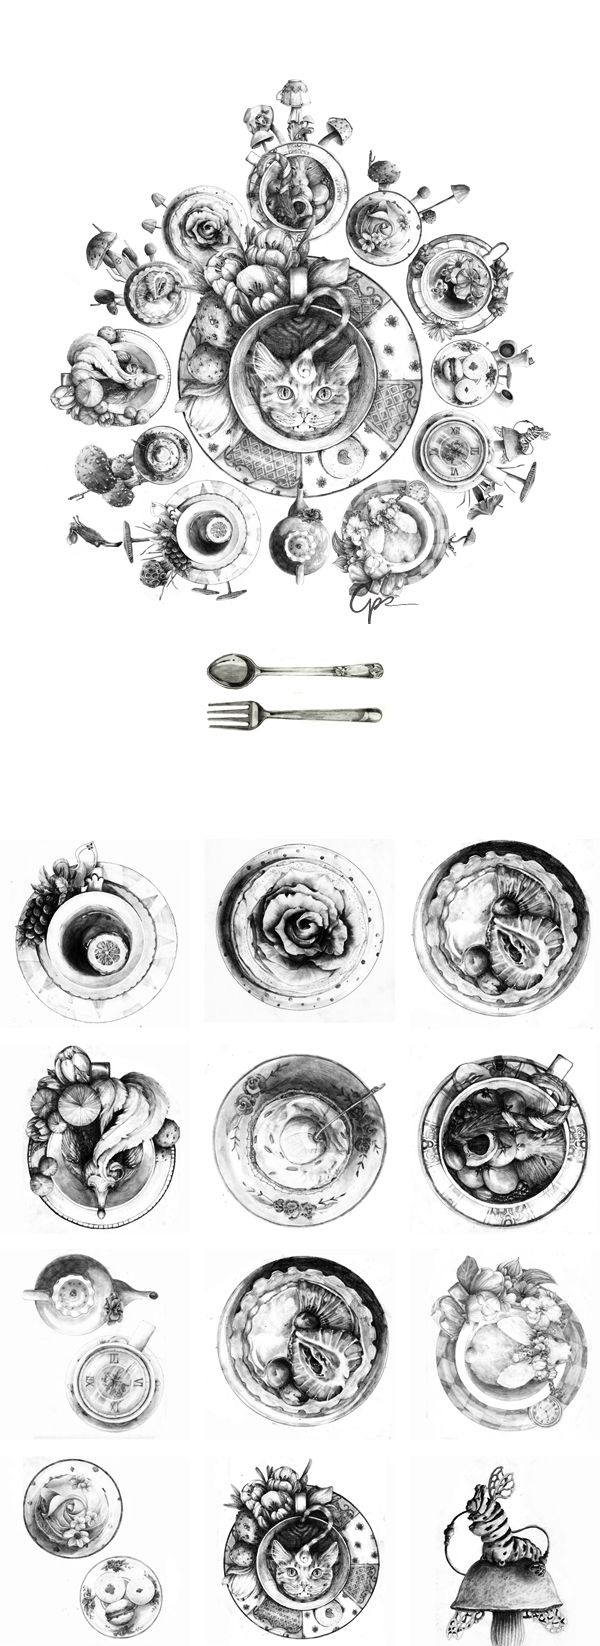 Who's Up for Tea?: Black and white version; pencil illustration inspired by Alice in Wonderland. As the case with some of my works, each of the plate were drawn separately in a separate piece of paper and assembled in Photoshop to create the final artwork.   instagram.com/chrs_r